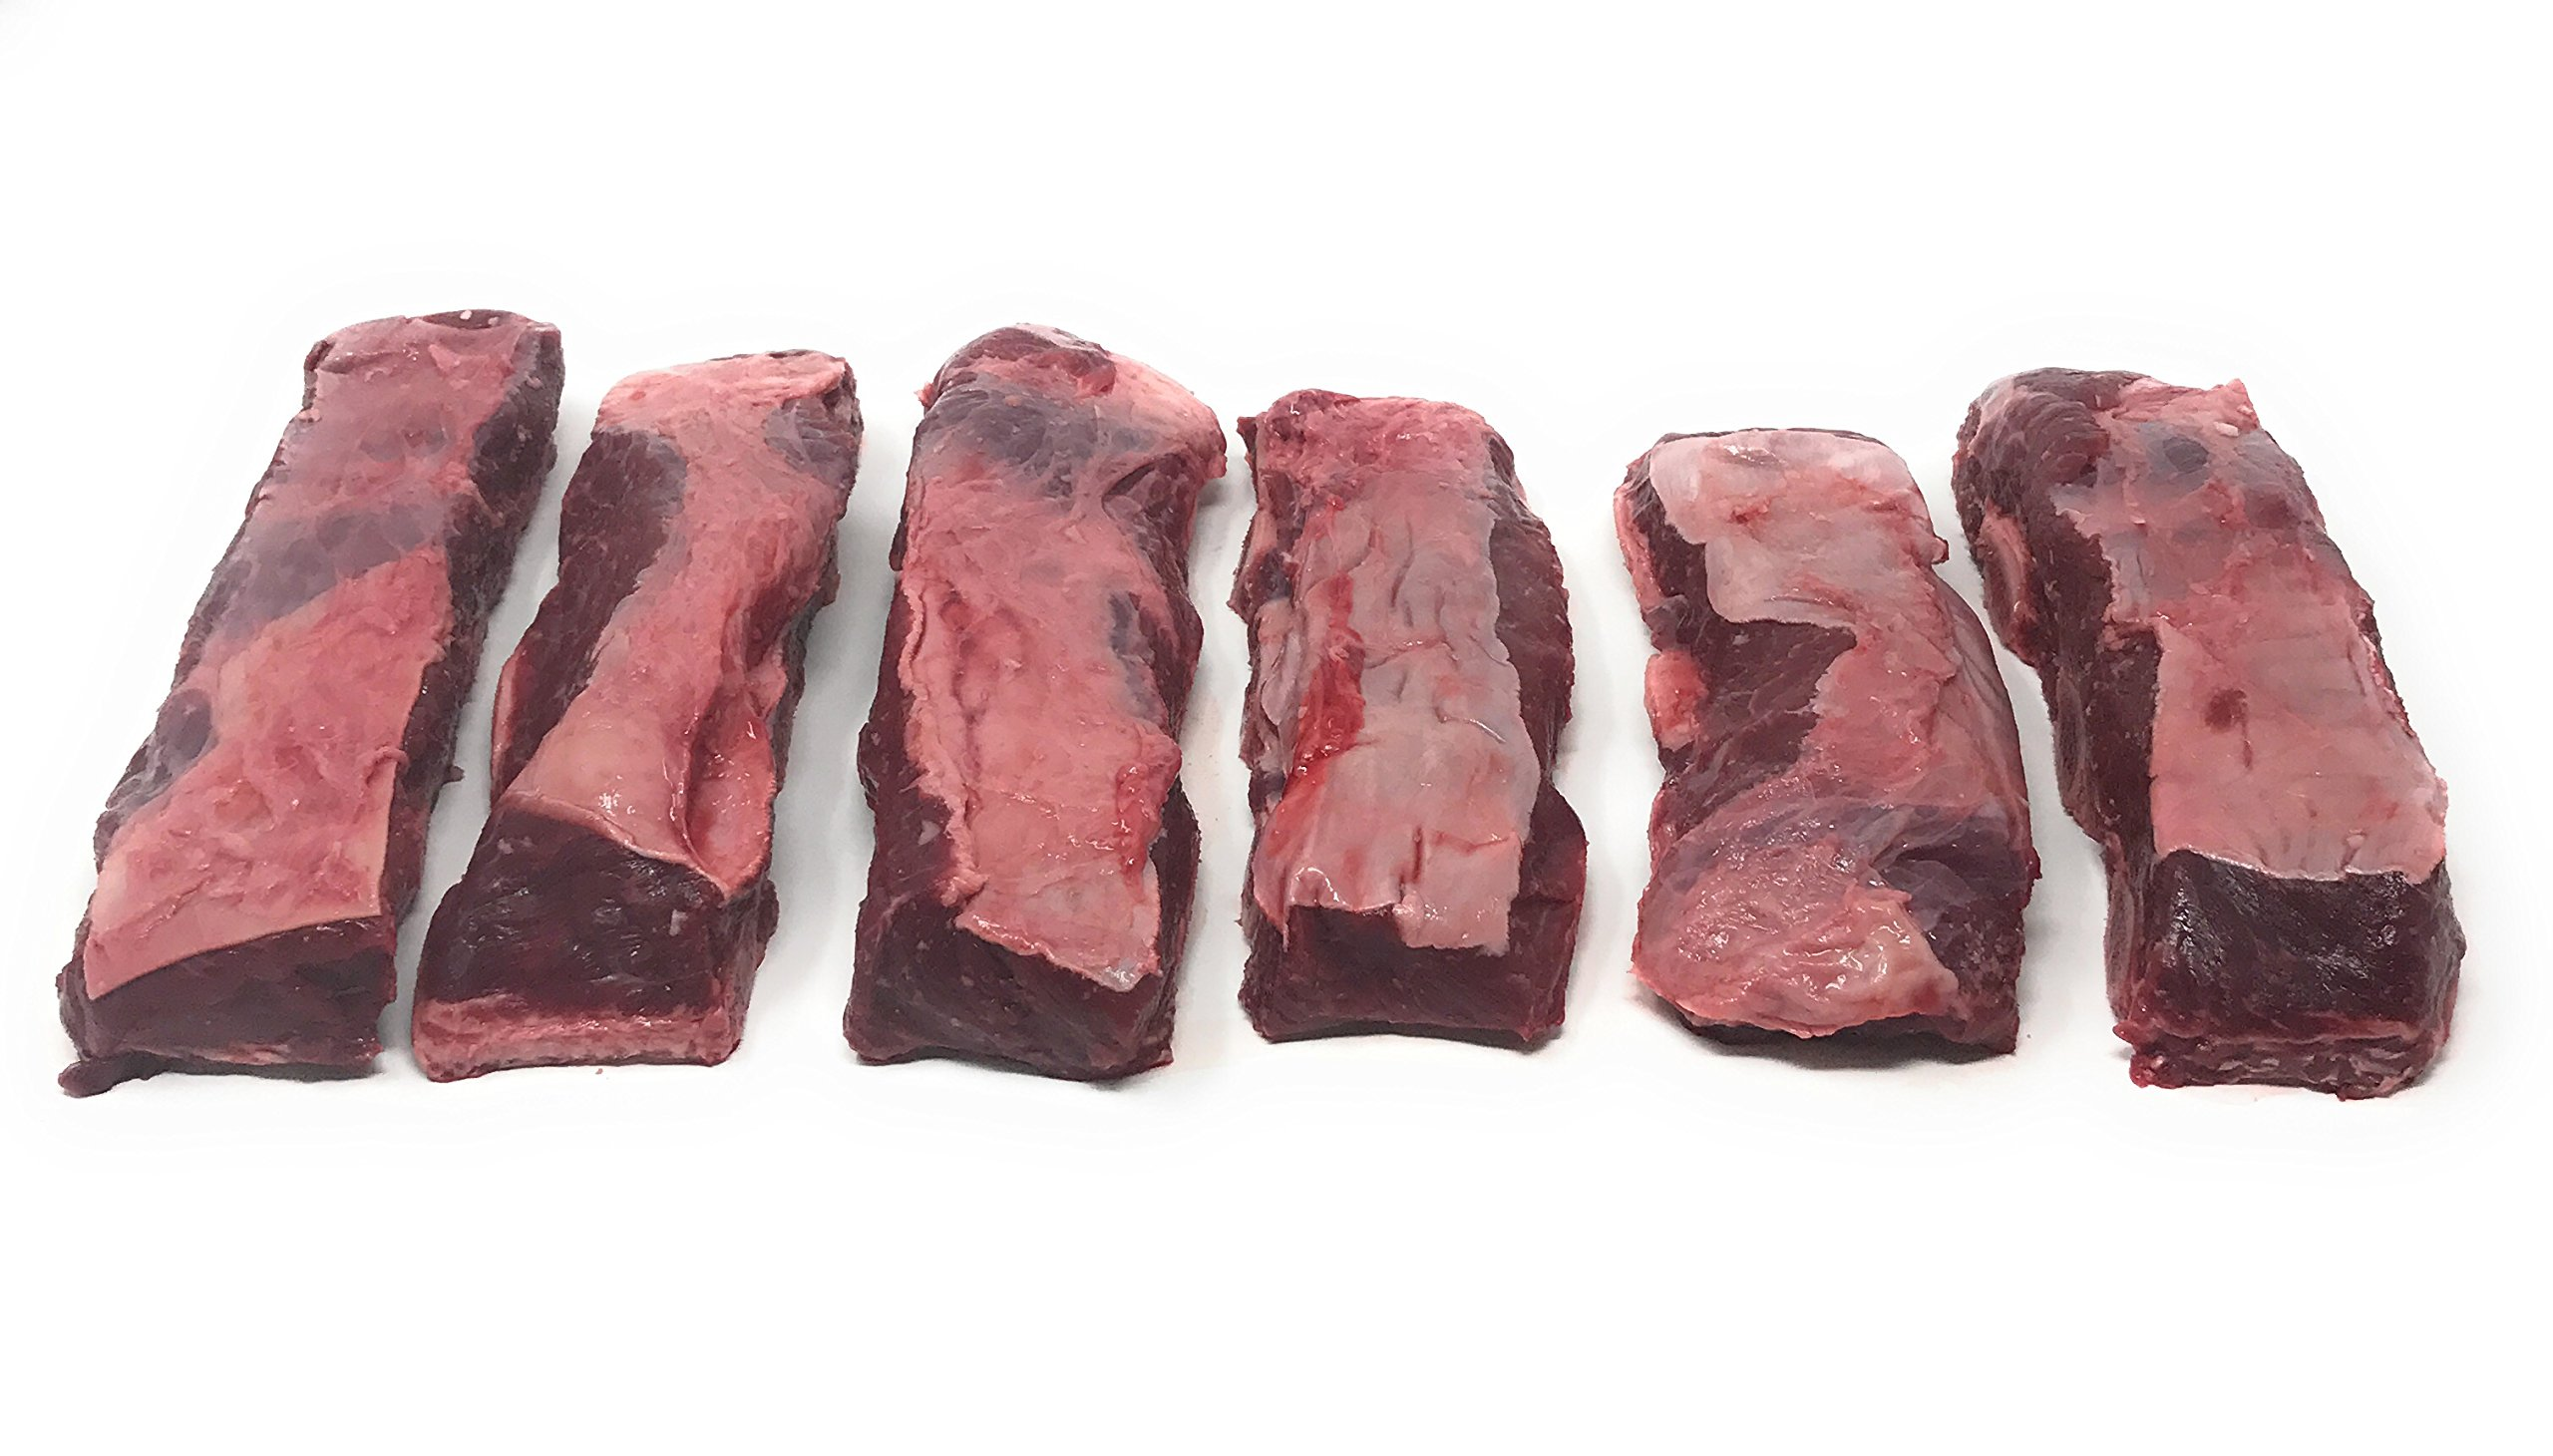 Bison Bone-In Short Ribs: 100% All-Natural, Grass-Fed and Grain Finished North American Buffalo Meat with no Growth Hormones or Antibiotics - USDA Tested - 6 Pieces, 4.25 lbs of Flavorful Meat